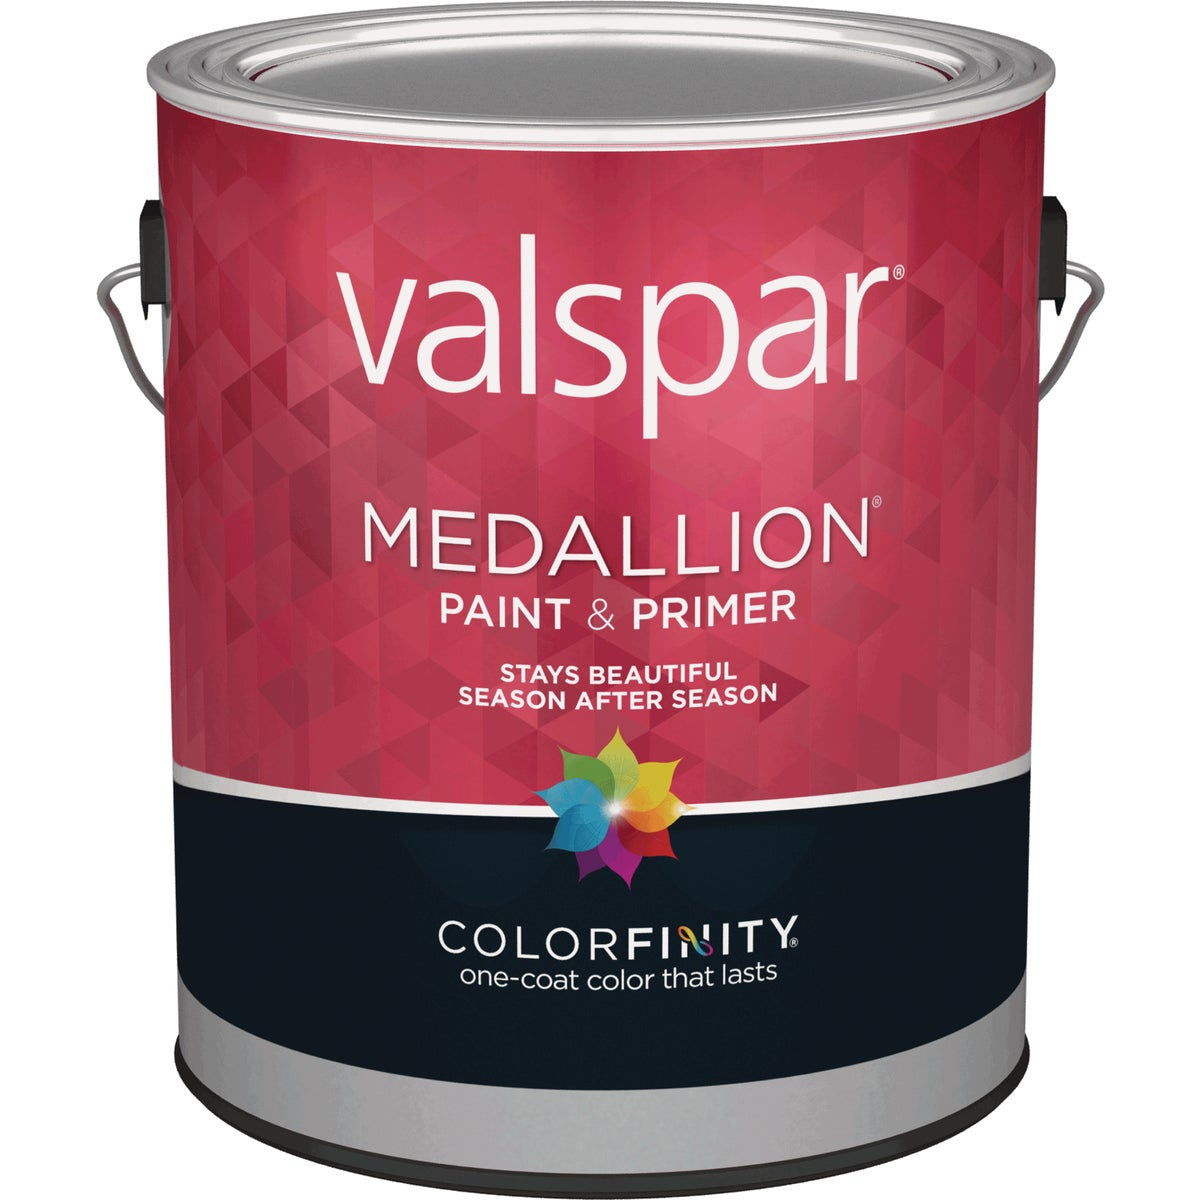 EXT S/G WHITE PAINT - 027.0004300.007 by Valspar Corp